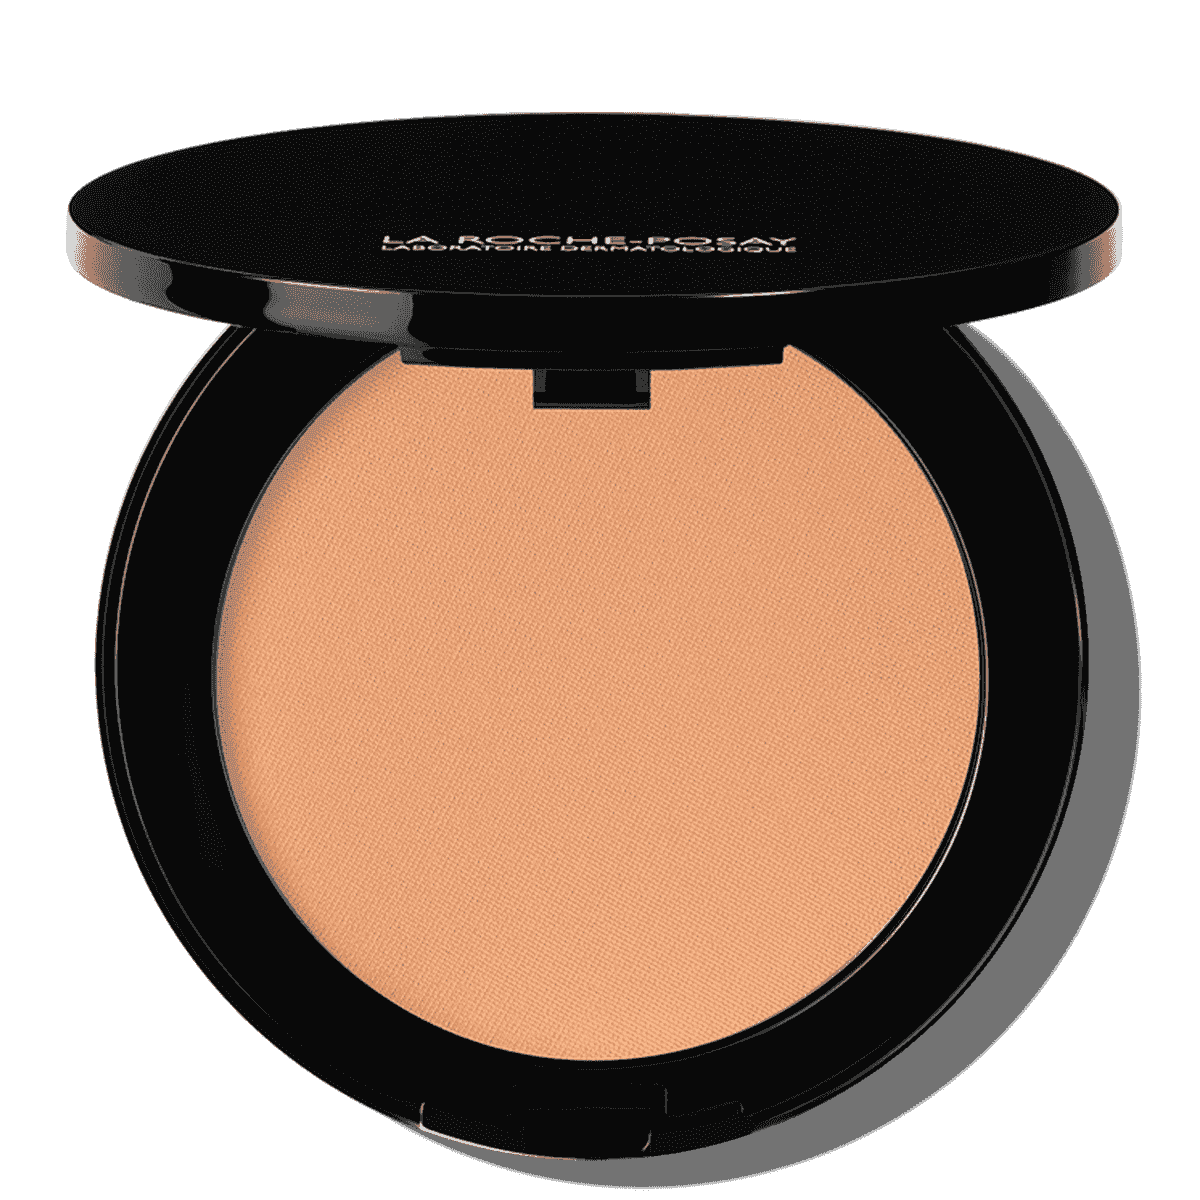 La Roche Posay Sensitive Toleriane Make up COMPACT_POWDER_14RoseBeige